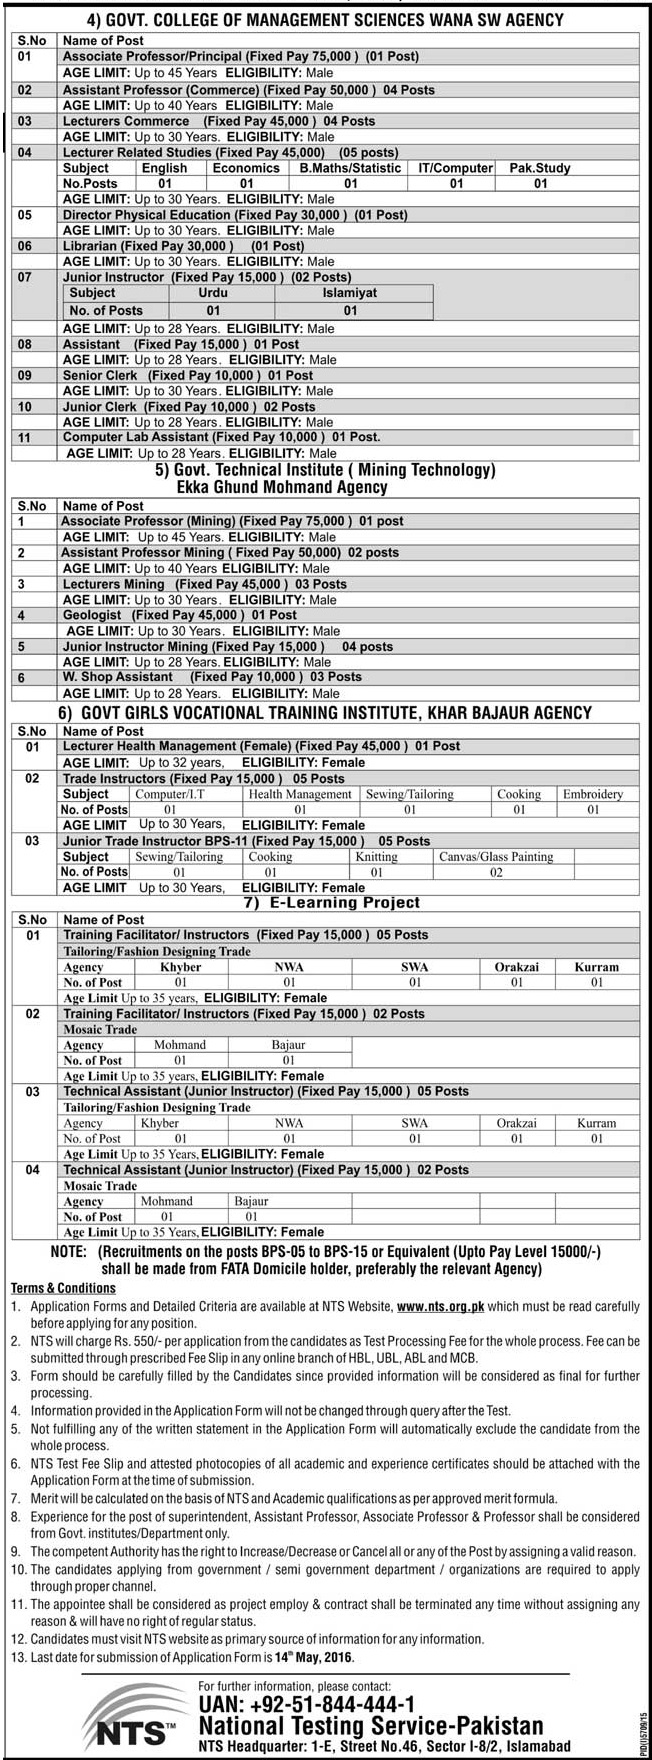 Fata Development Authority Jobs 2016 NTS Application Form Download Last Date